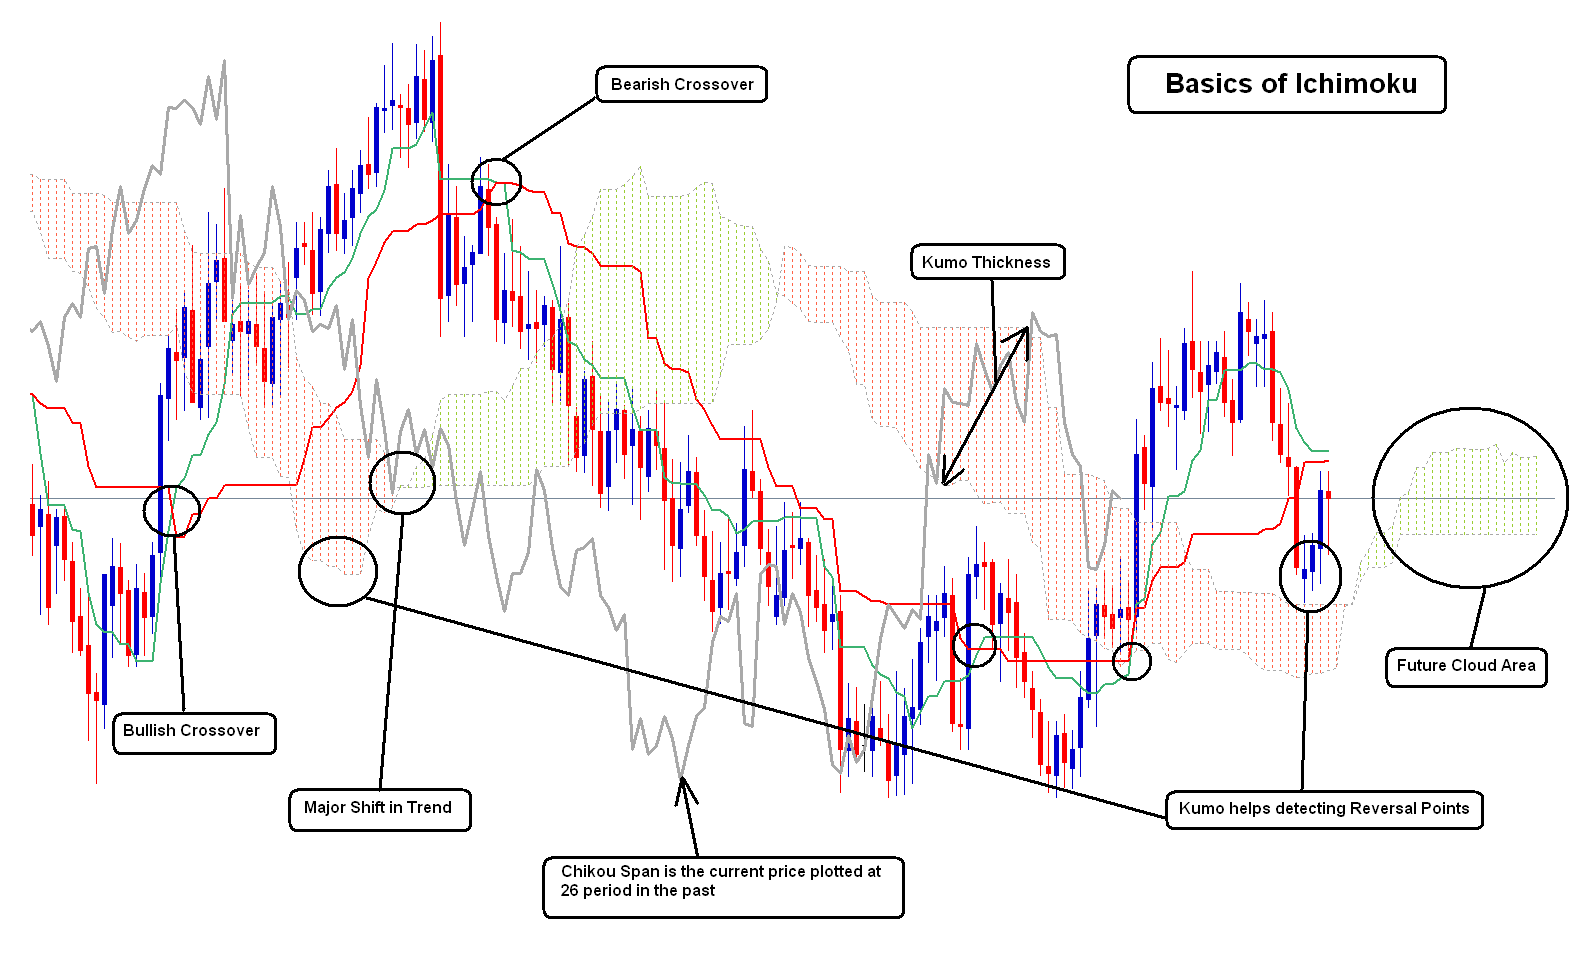 Forex trading involves a substantial risk of loss but with Ichimoku cloud trading those losses can be contained and kept very small. The Ichimoku system is a Japanese charting method and a technical analysis method that our team at Trading Strategy Guides has managed to master for a very long period of time.